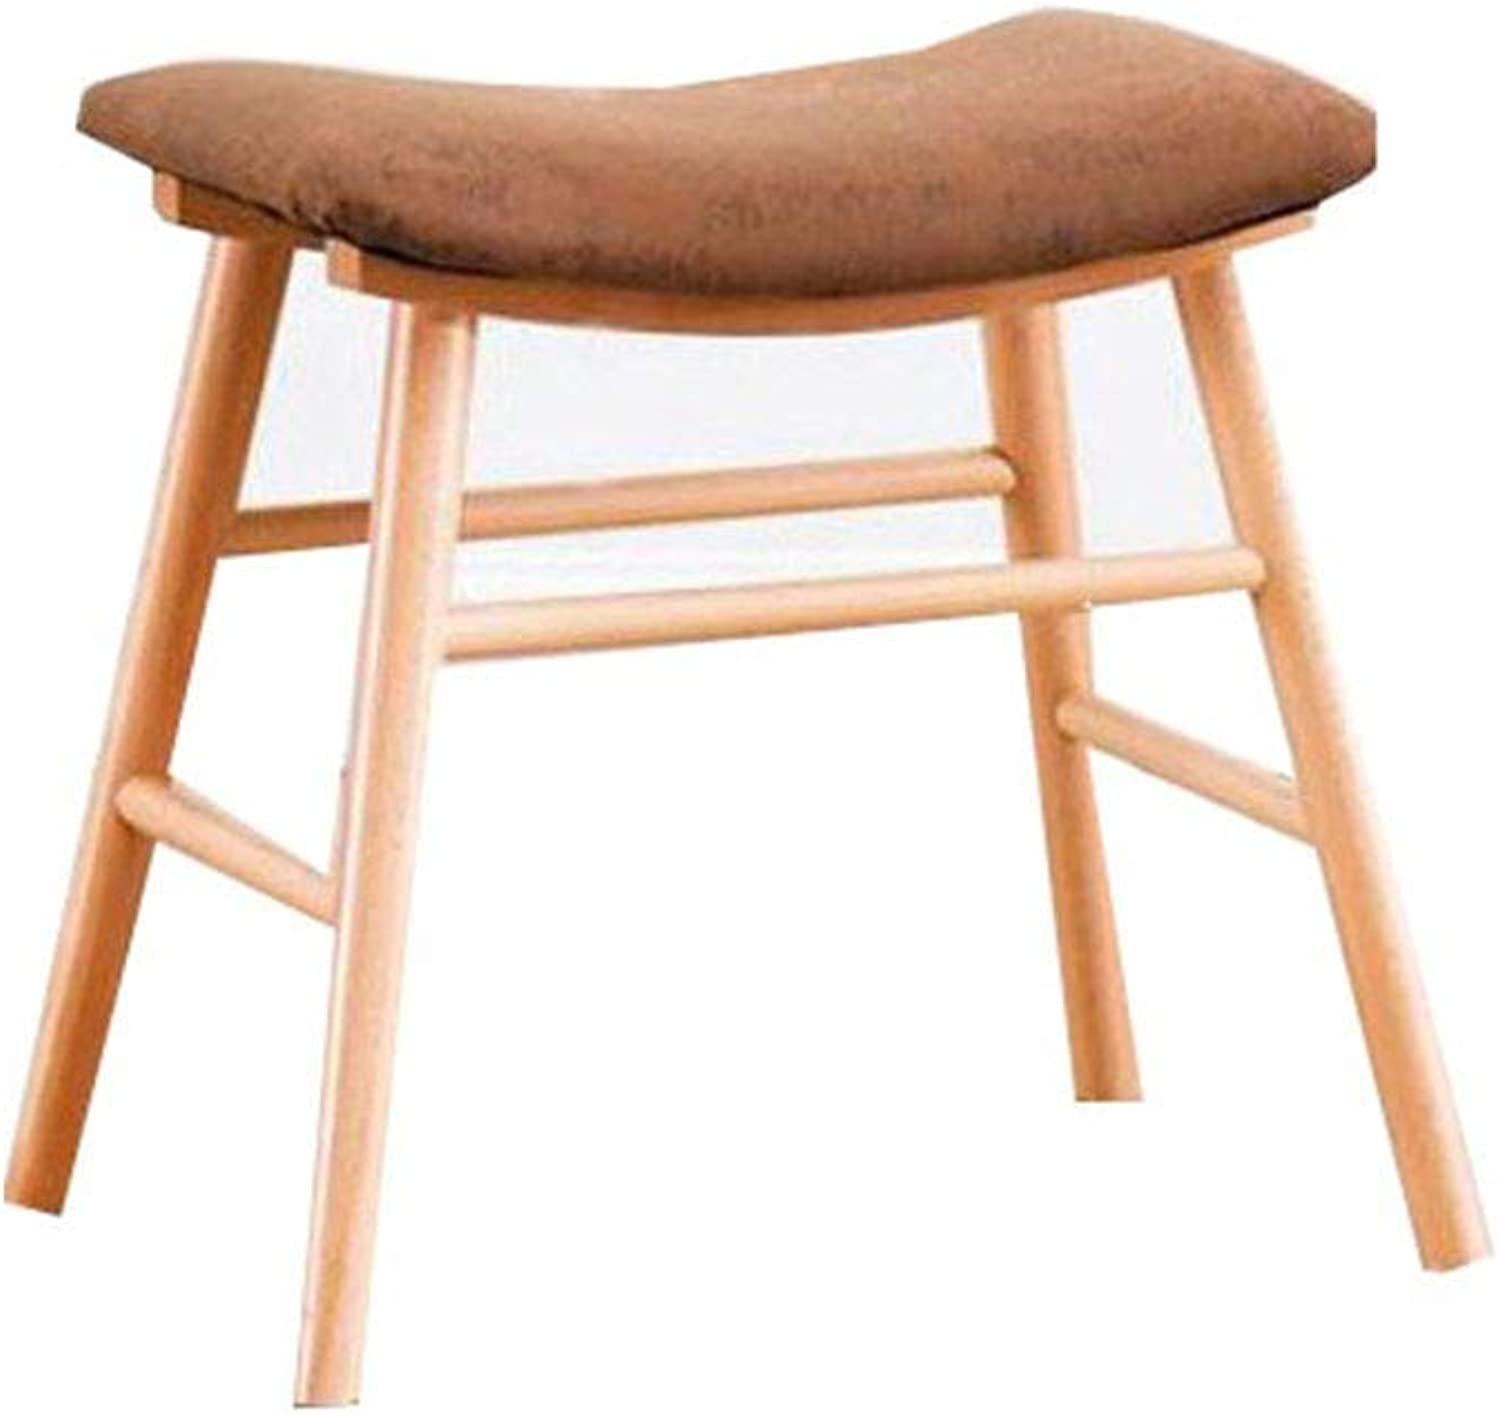 KTH Bedroom wooden stool fabric stool home makeup stool fashion shoes bench simple modern soft surface dining table stool